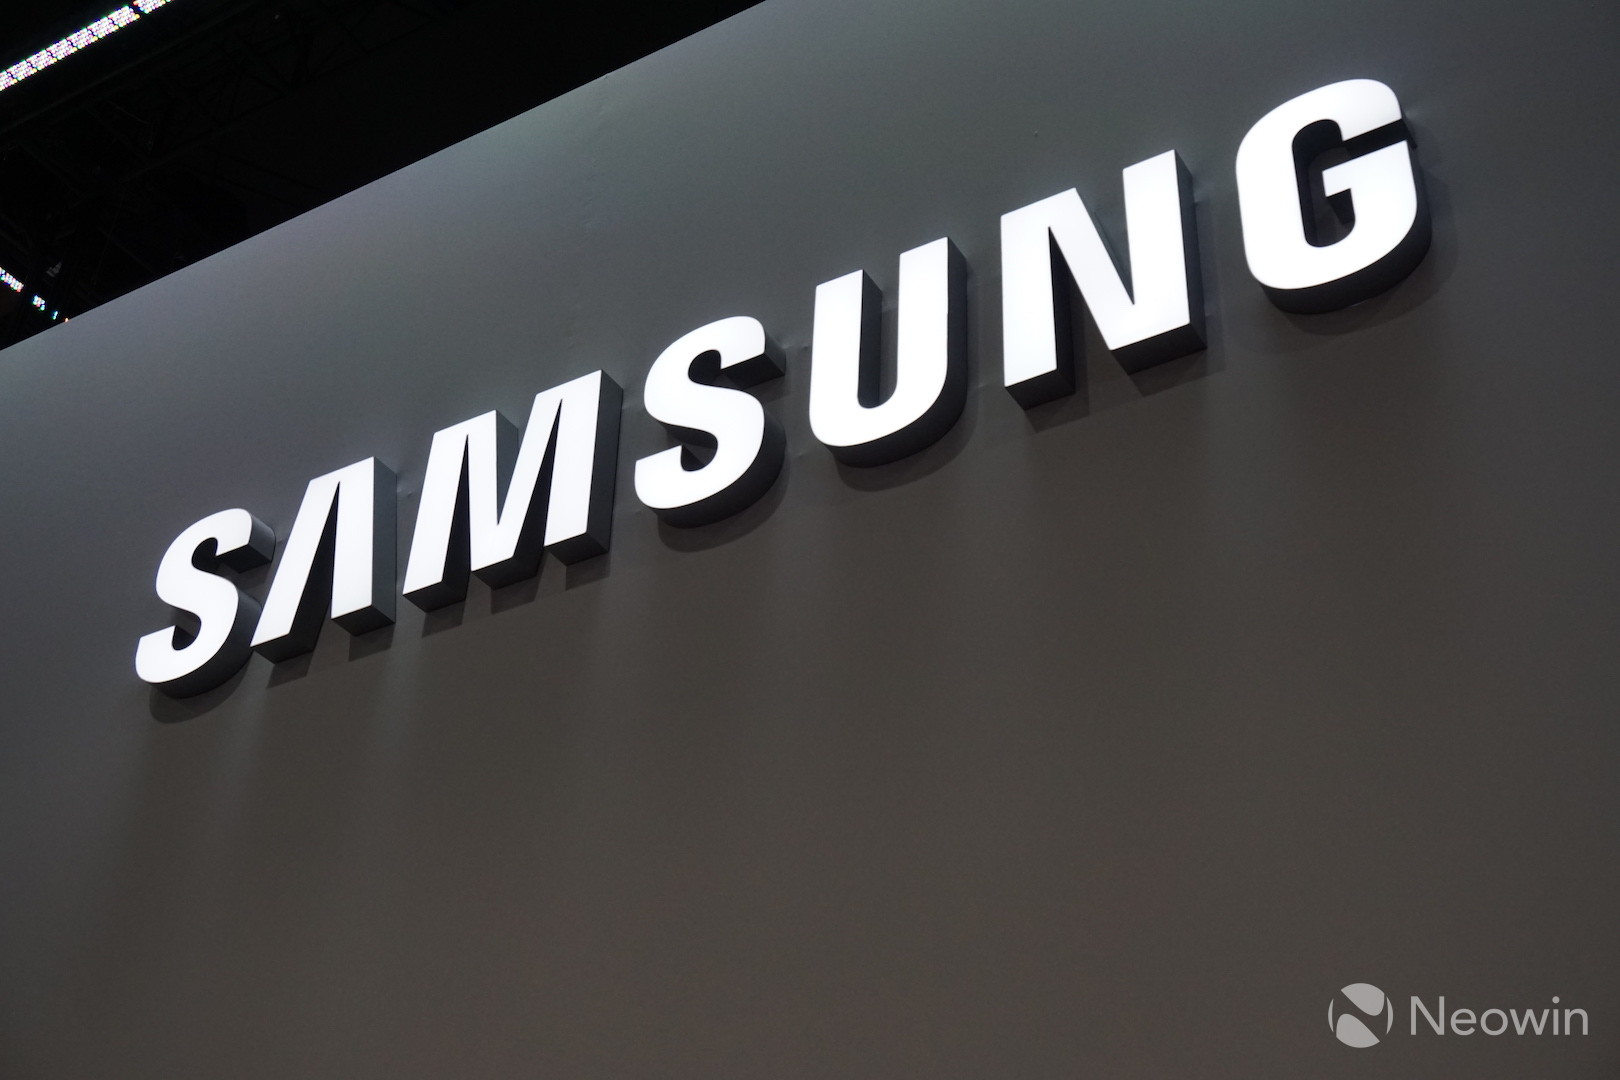 Samsung's Working on Second-Generation 10nm FinFET Process Based Chipsets